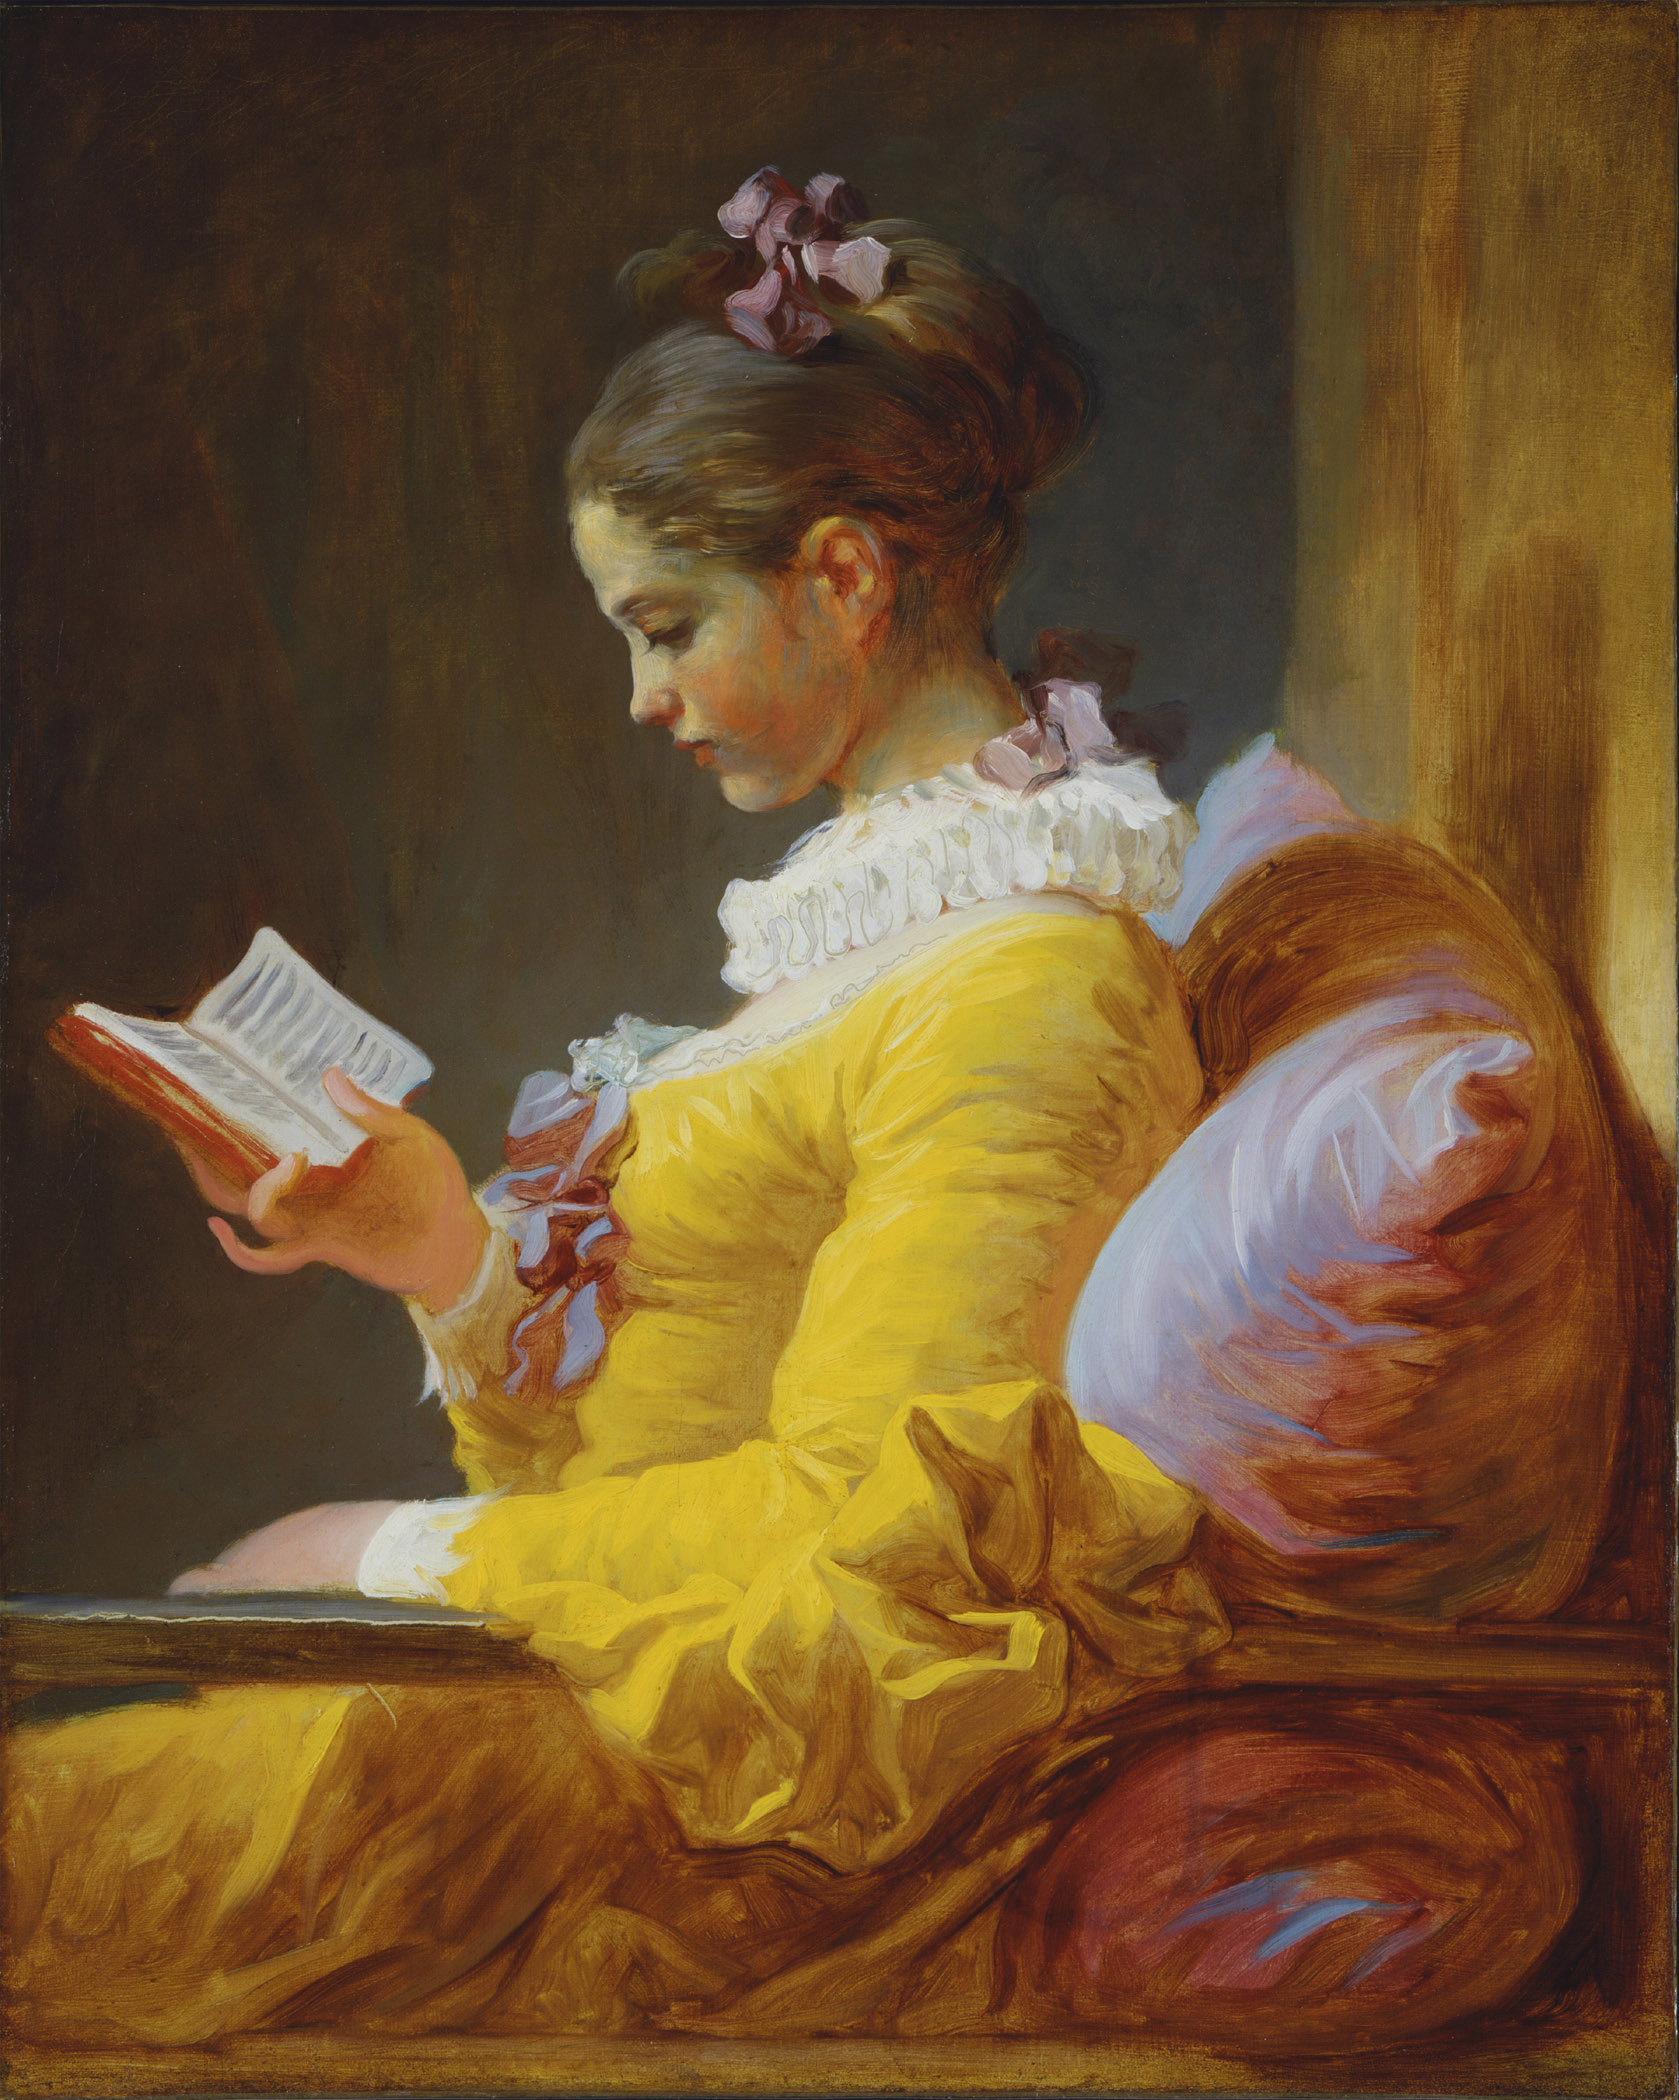 http://uploads1.wikipaintings.org/images/jean-honore-fragonard/young-girl-reading.jpg